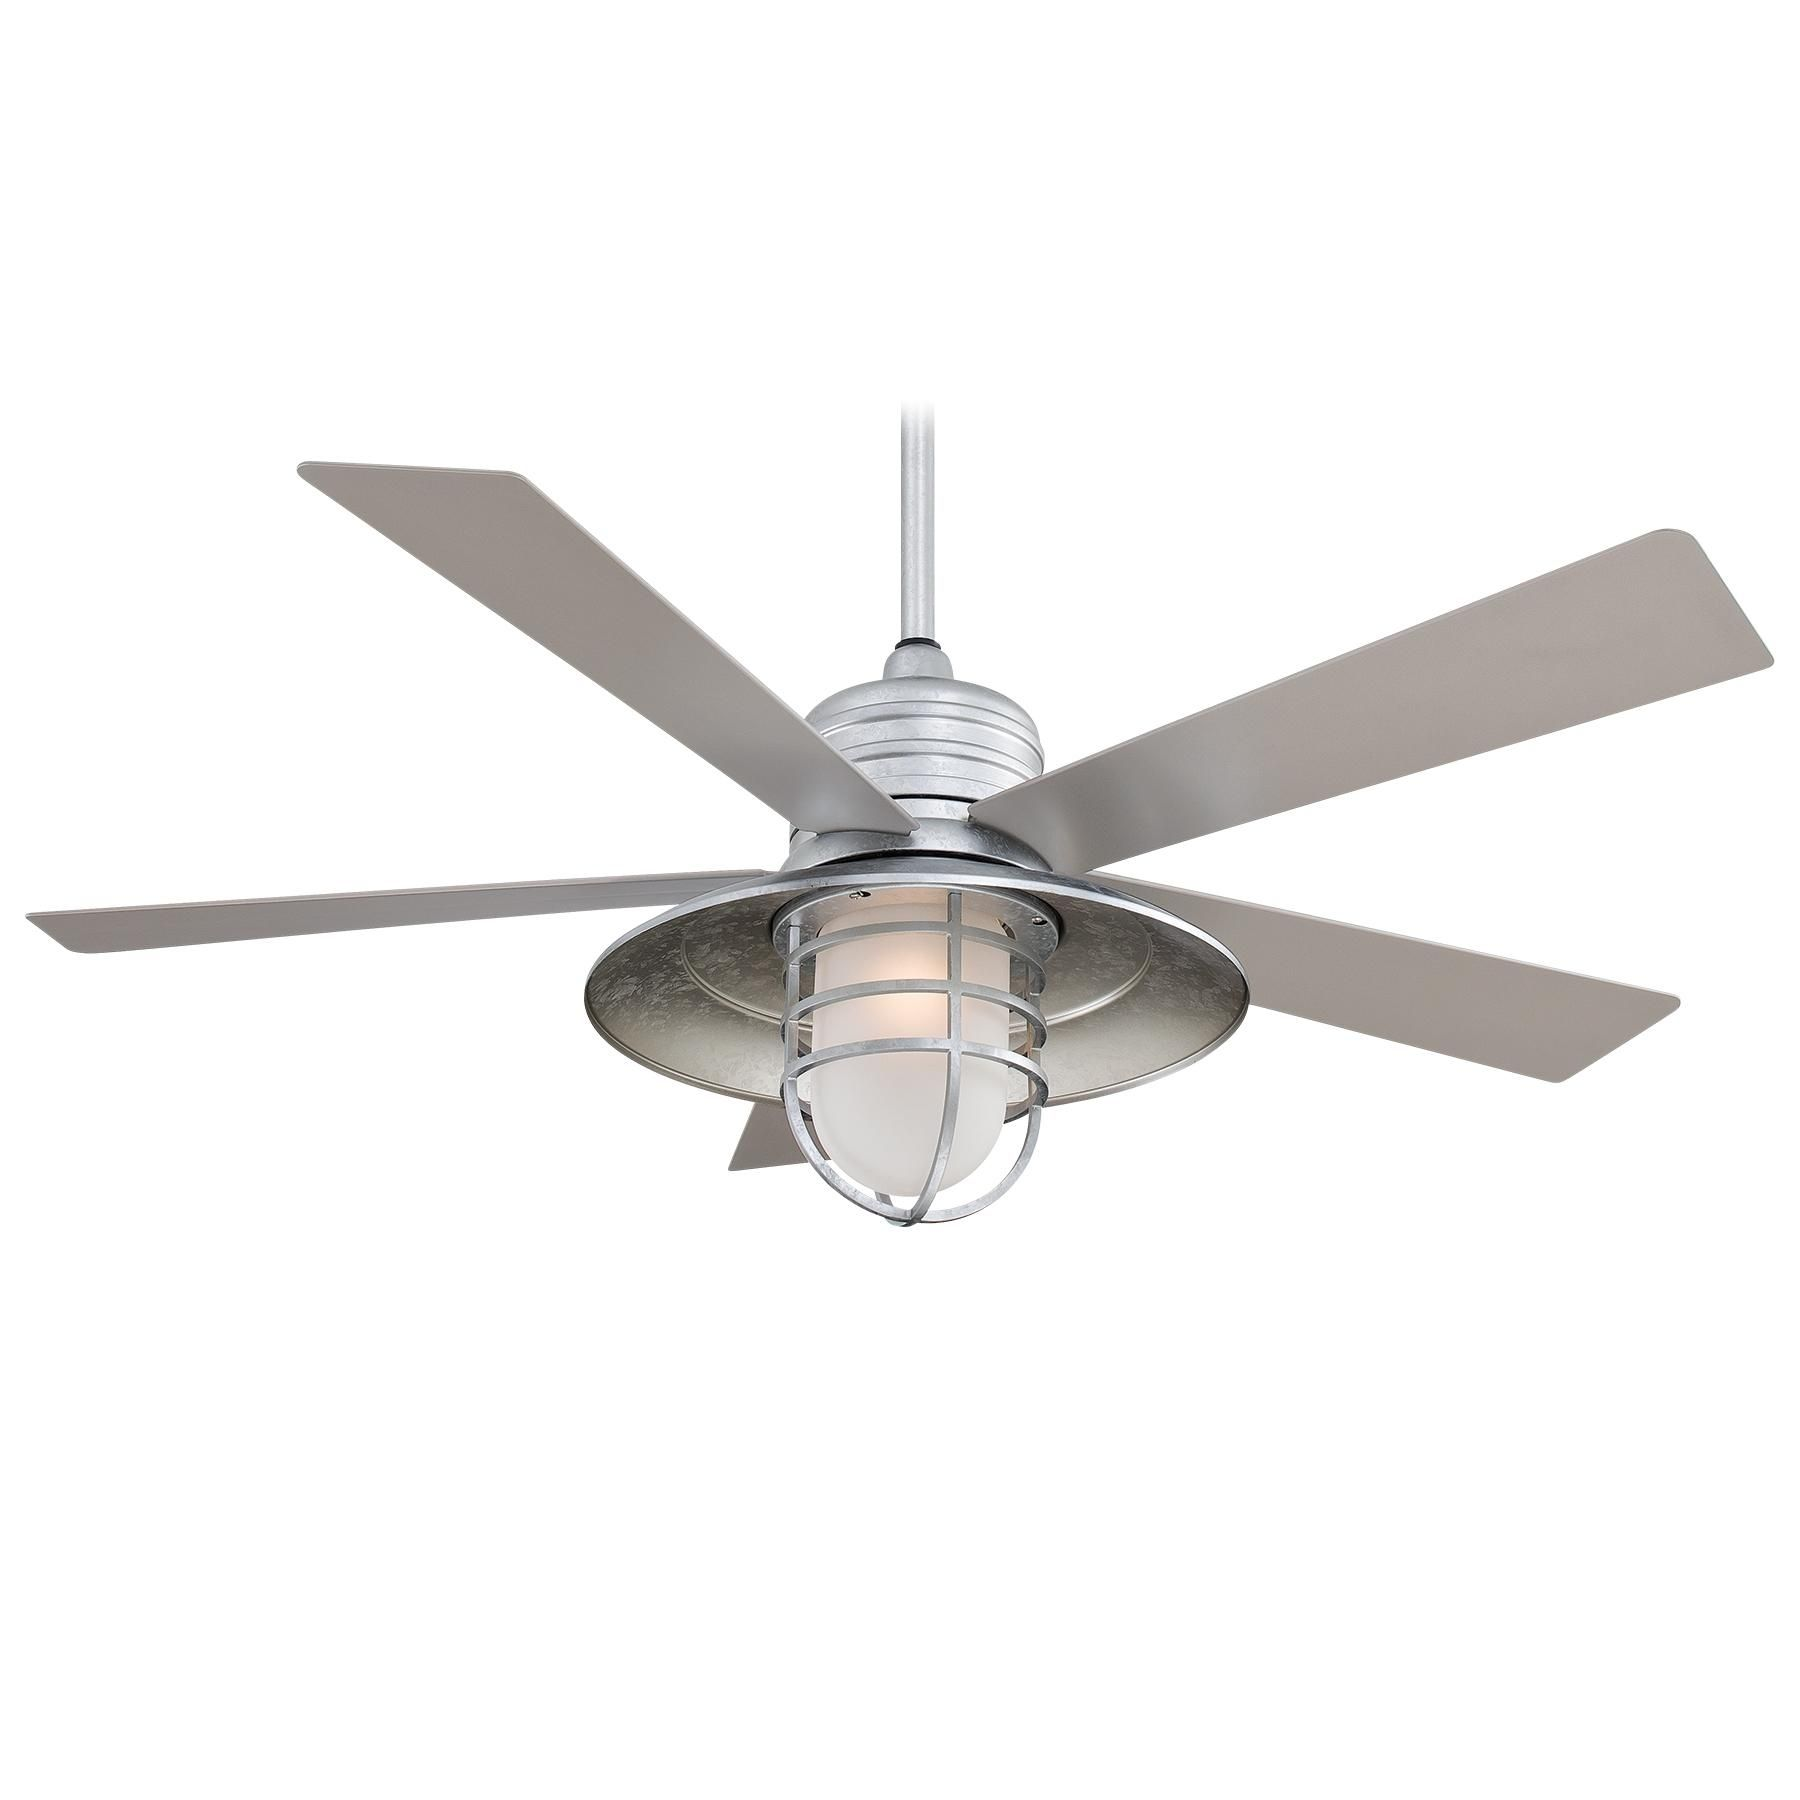 nautical themed ceiling fans vintage looking outdoor themed ceiling fans httpladysroinfo pinterest